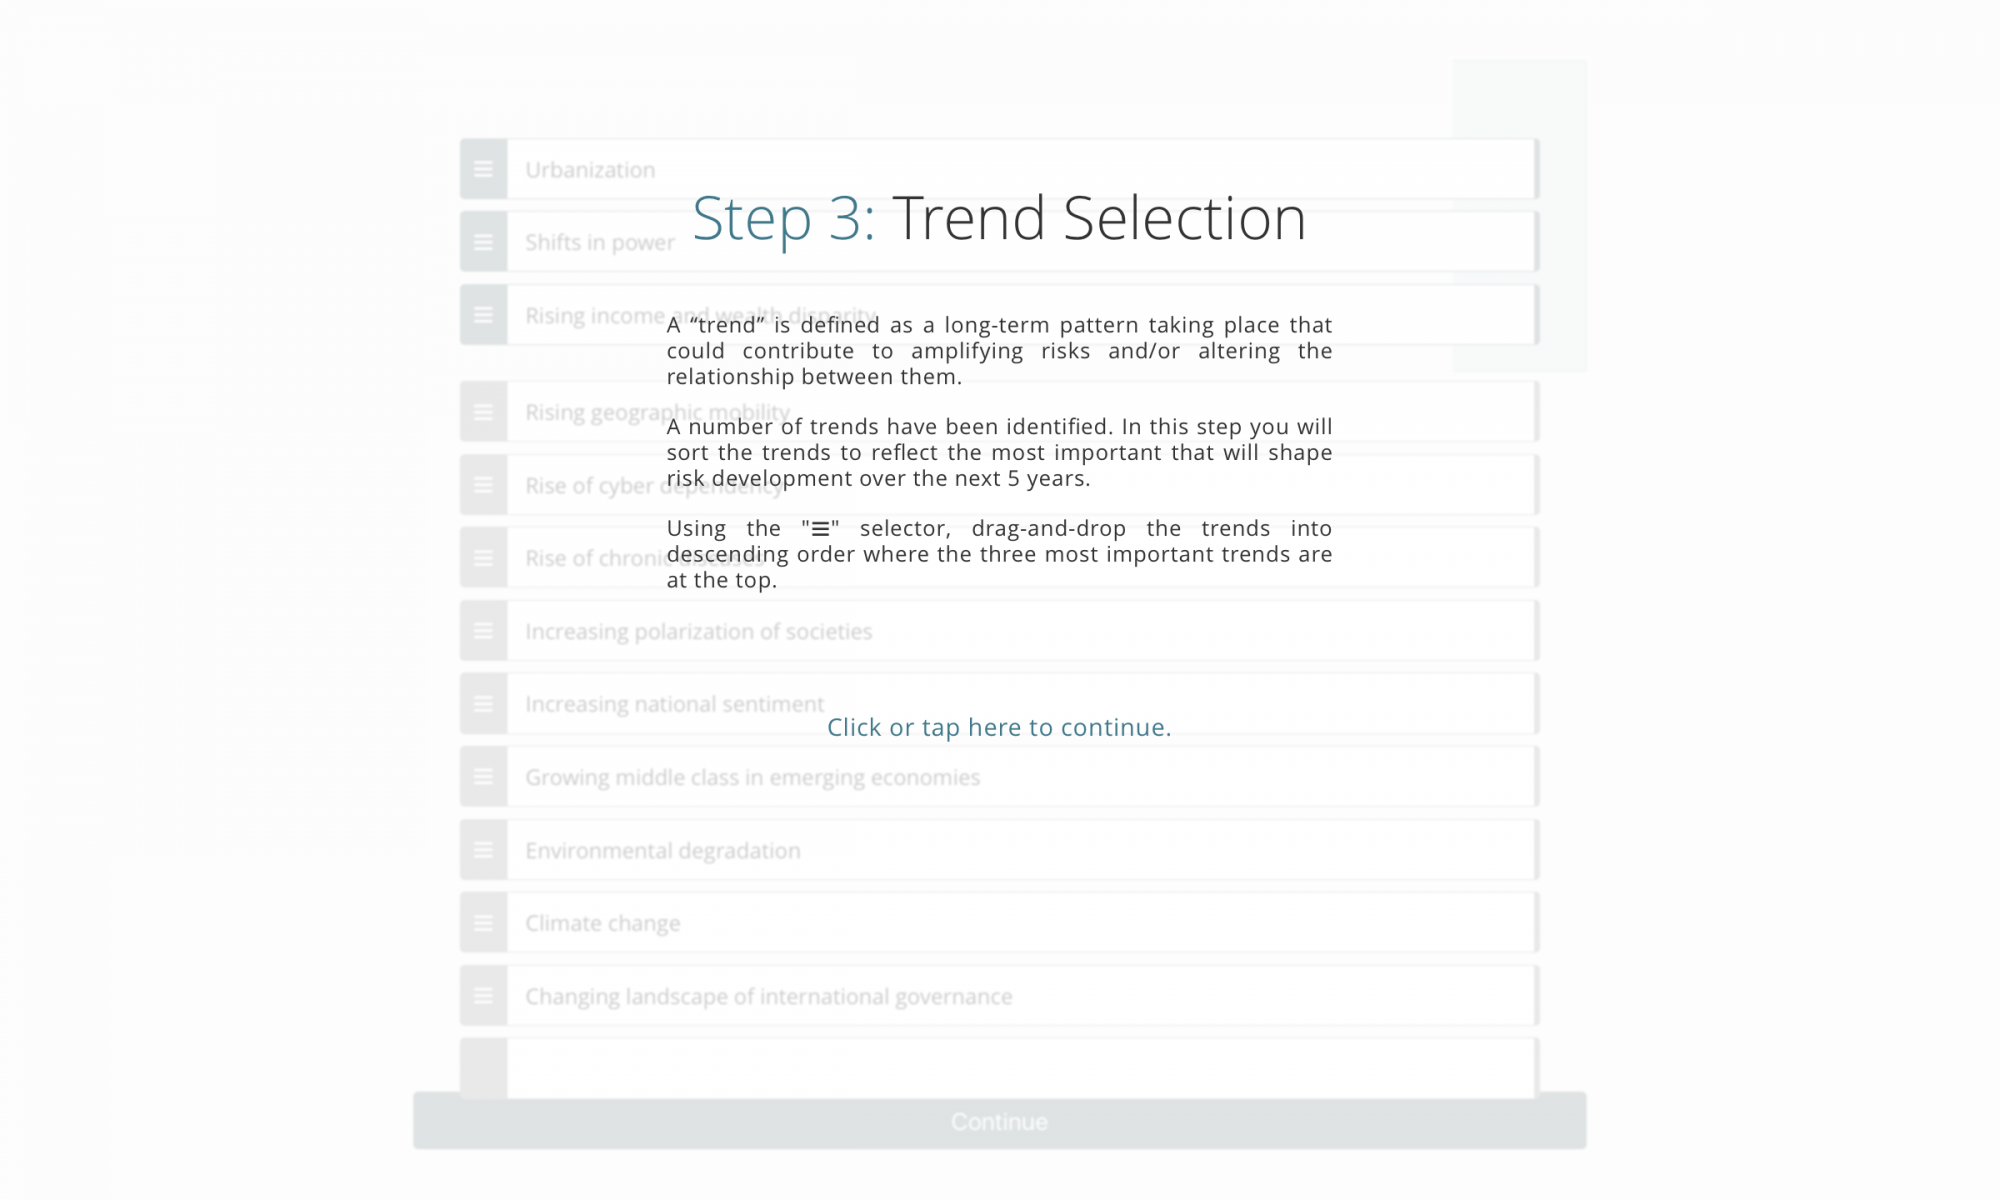 Step 3 - Trend Selection